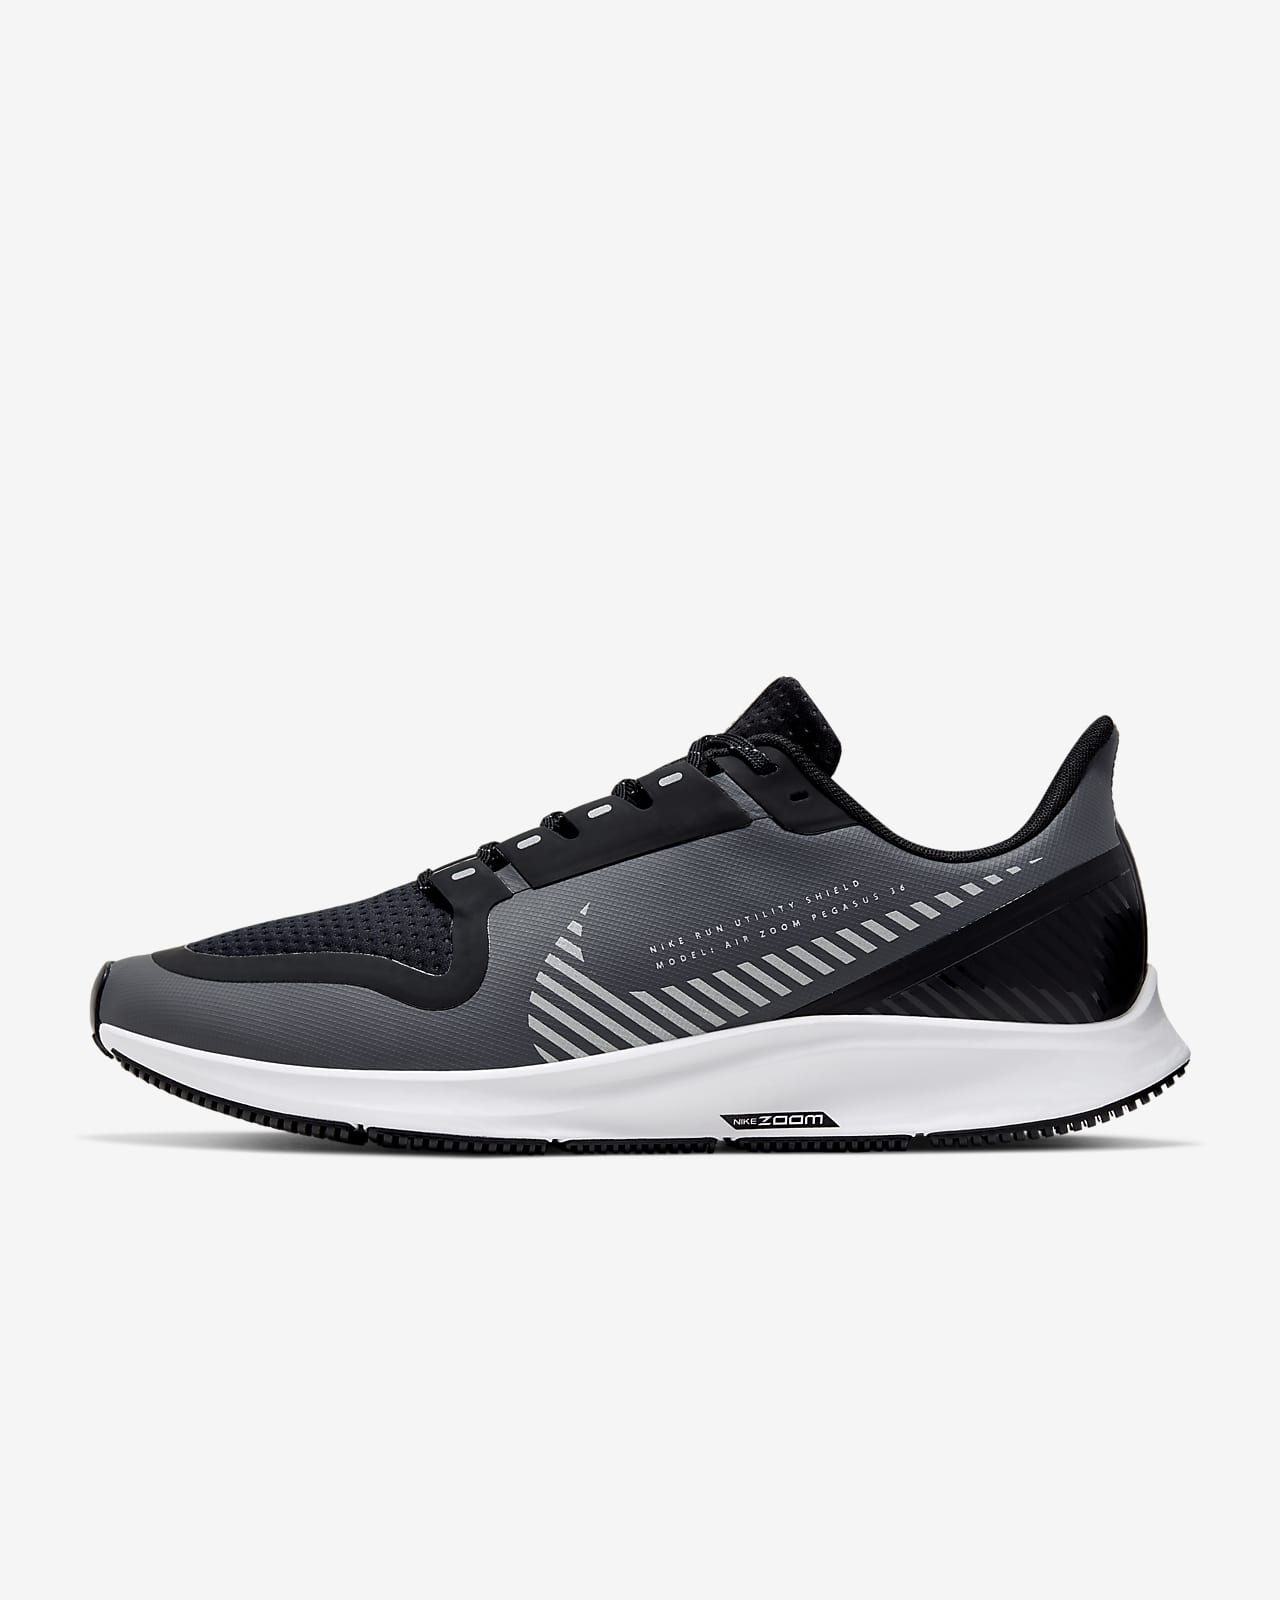 Chaussure de running Nike Air Zoom Pegasus 36 Shield pour Homme